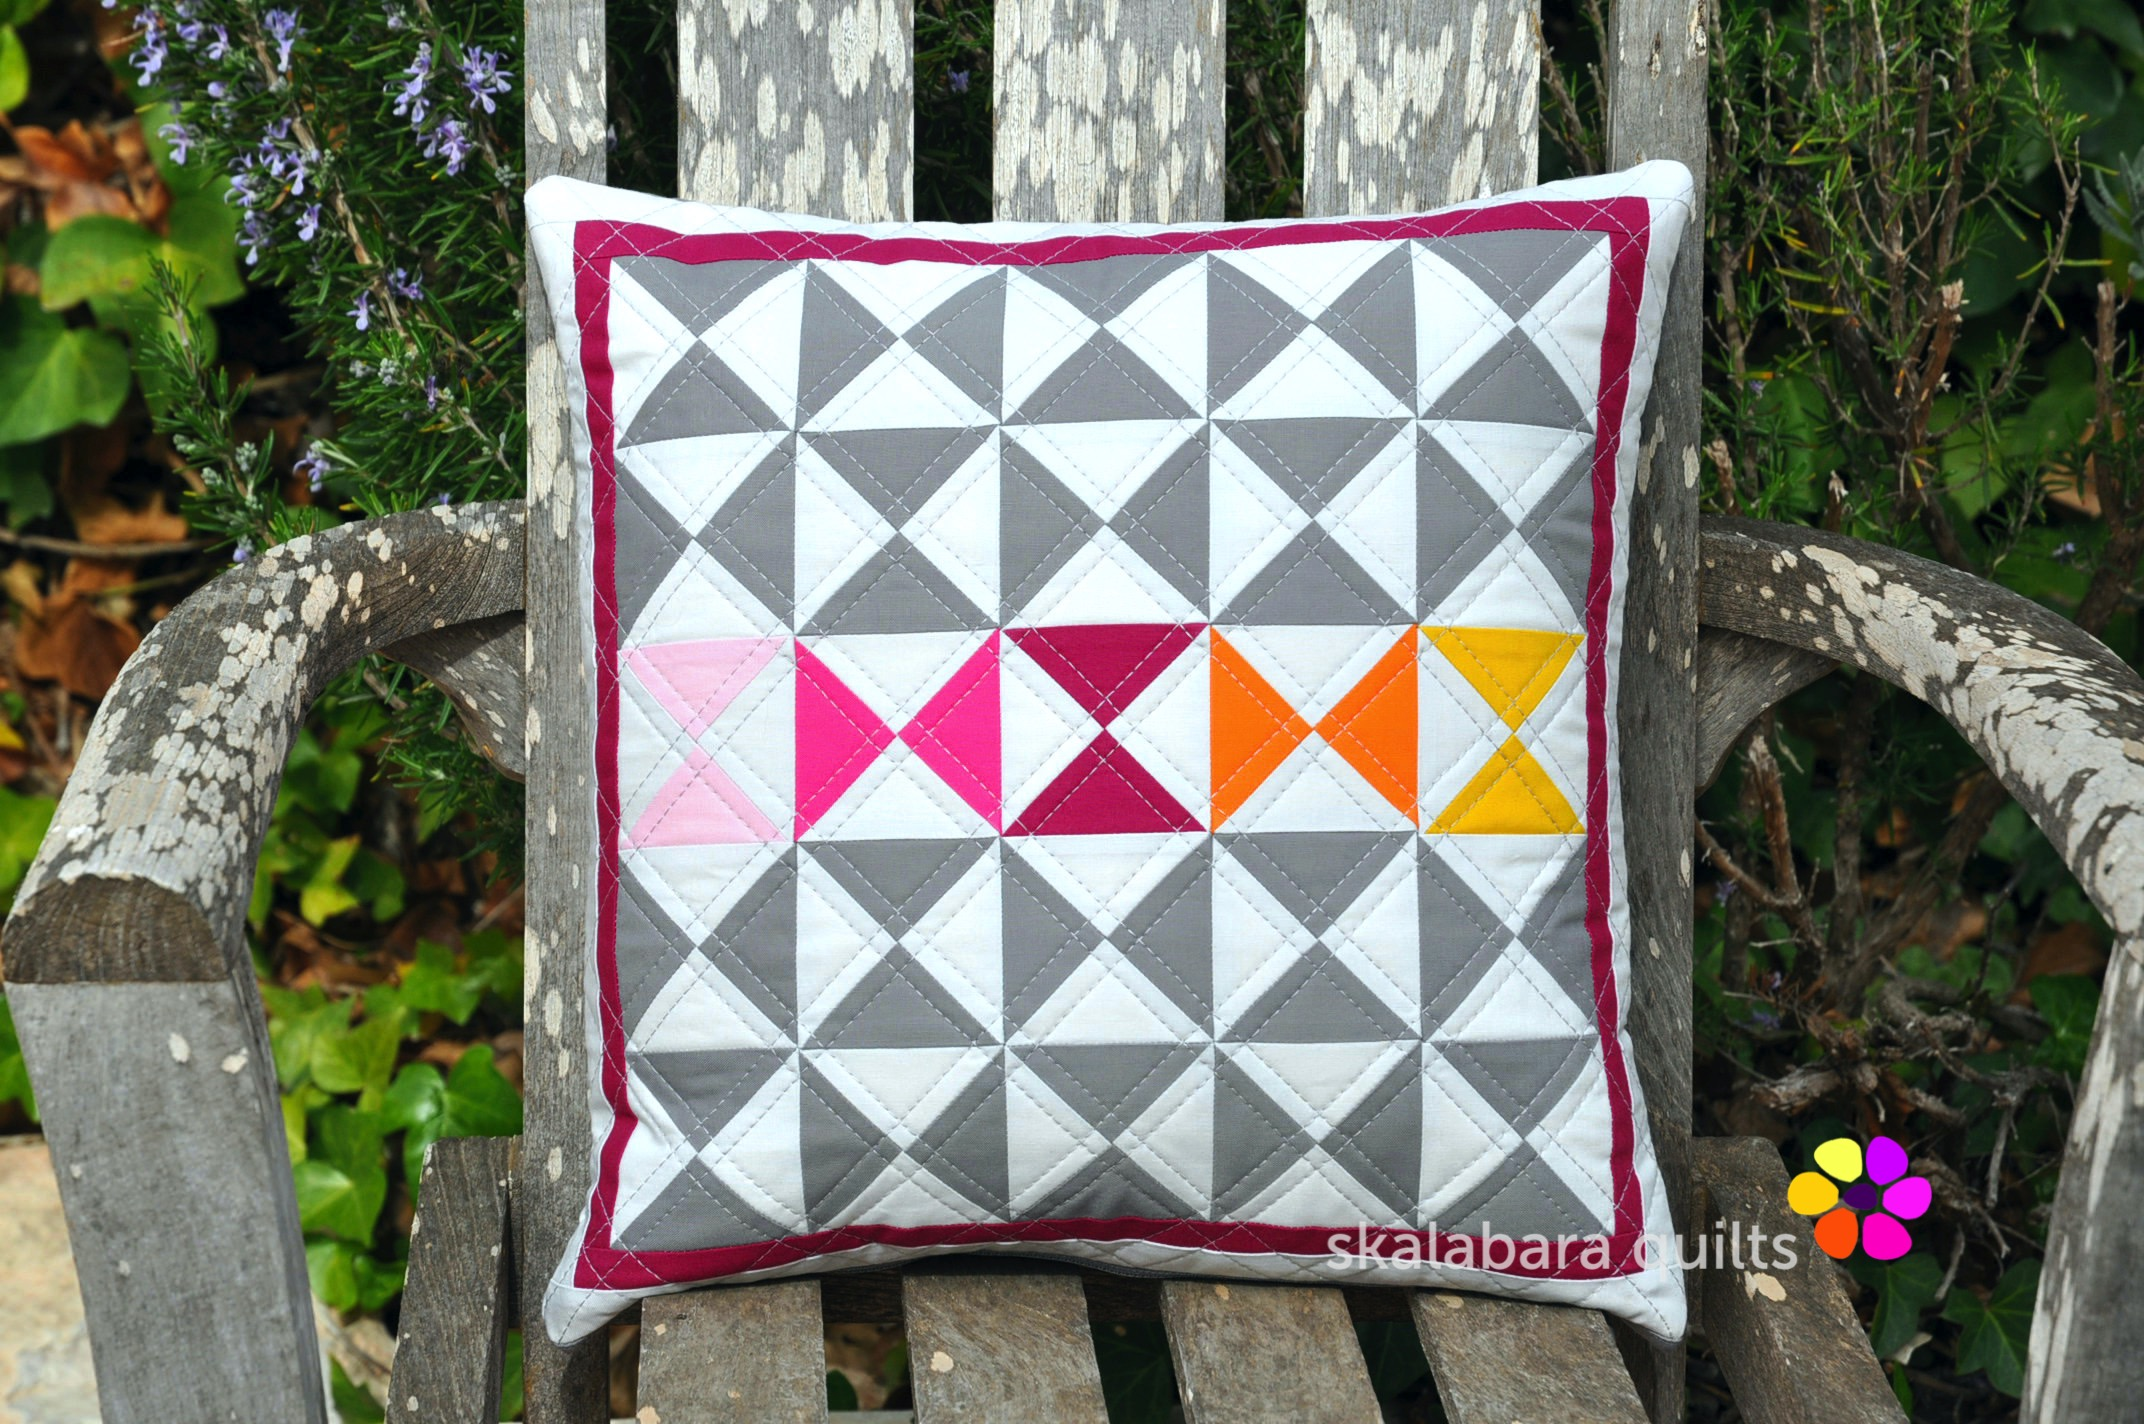 21 CU for alice side 2-2 - skalabara quilts